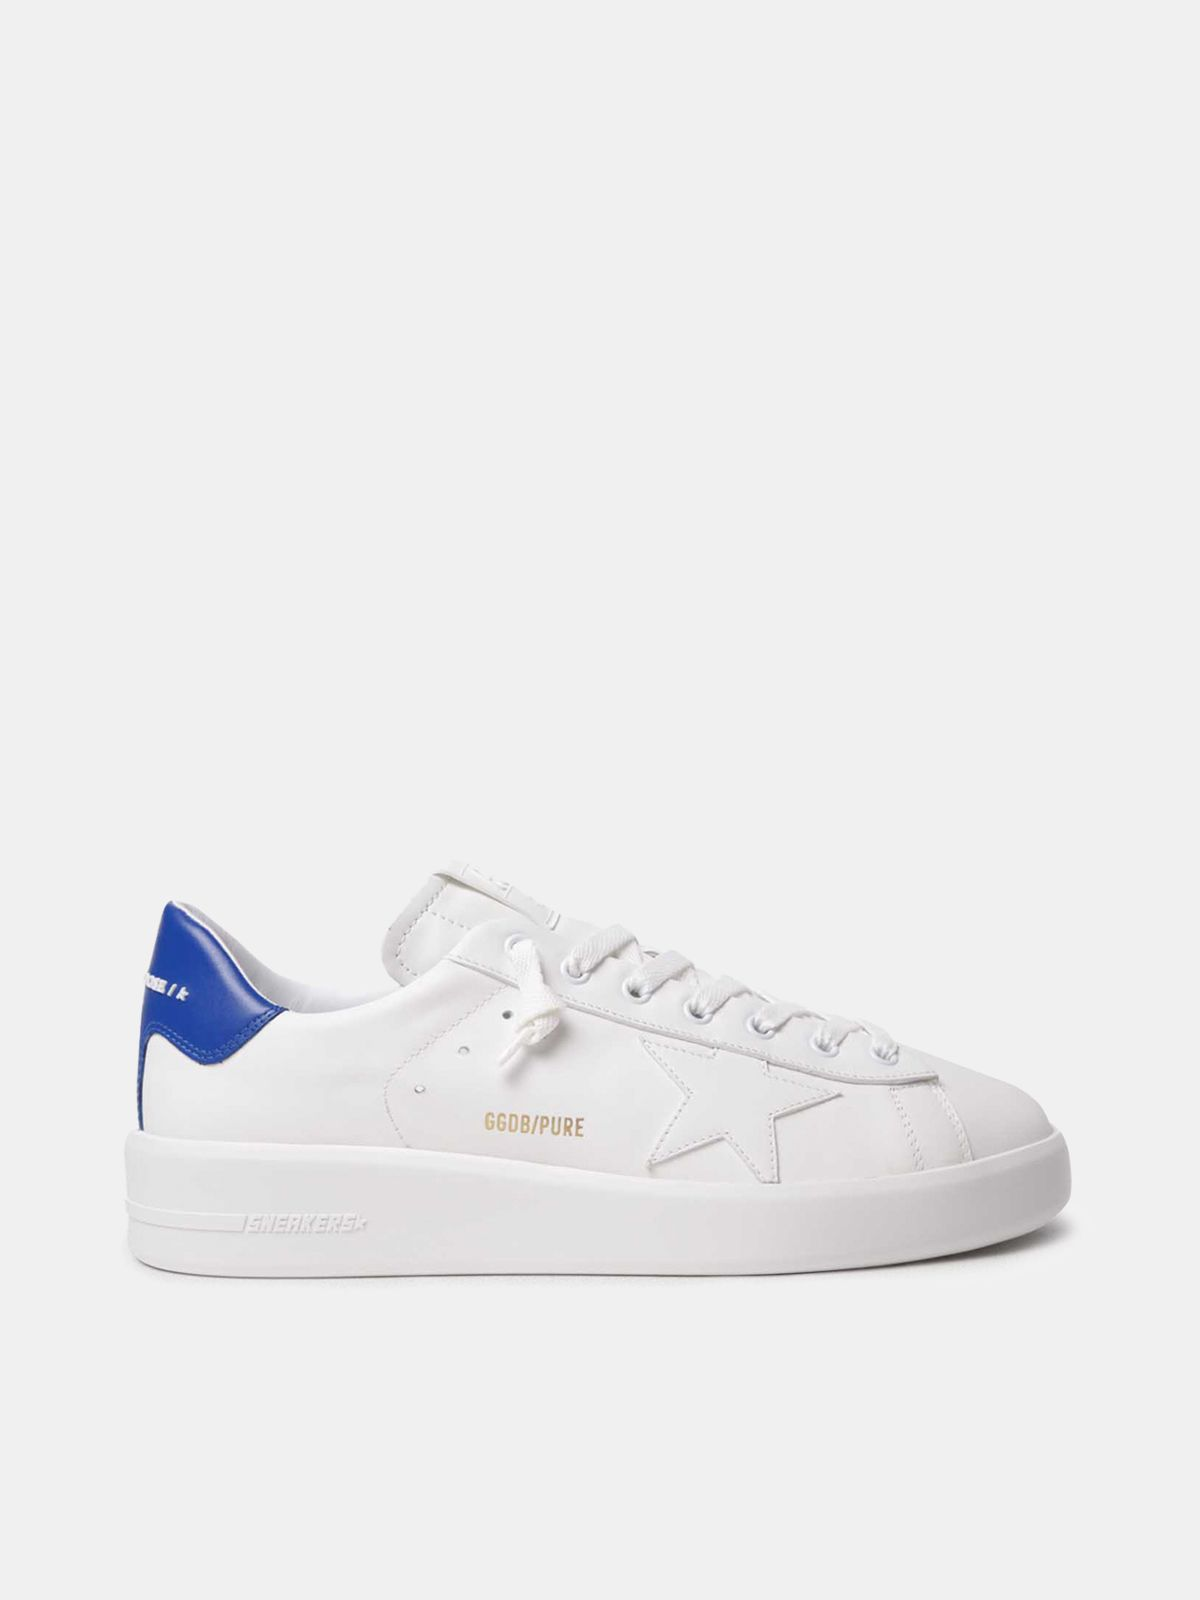 PURESTAR sneakers with blue heel tab